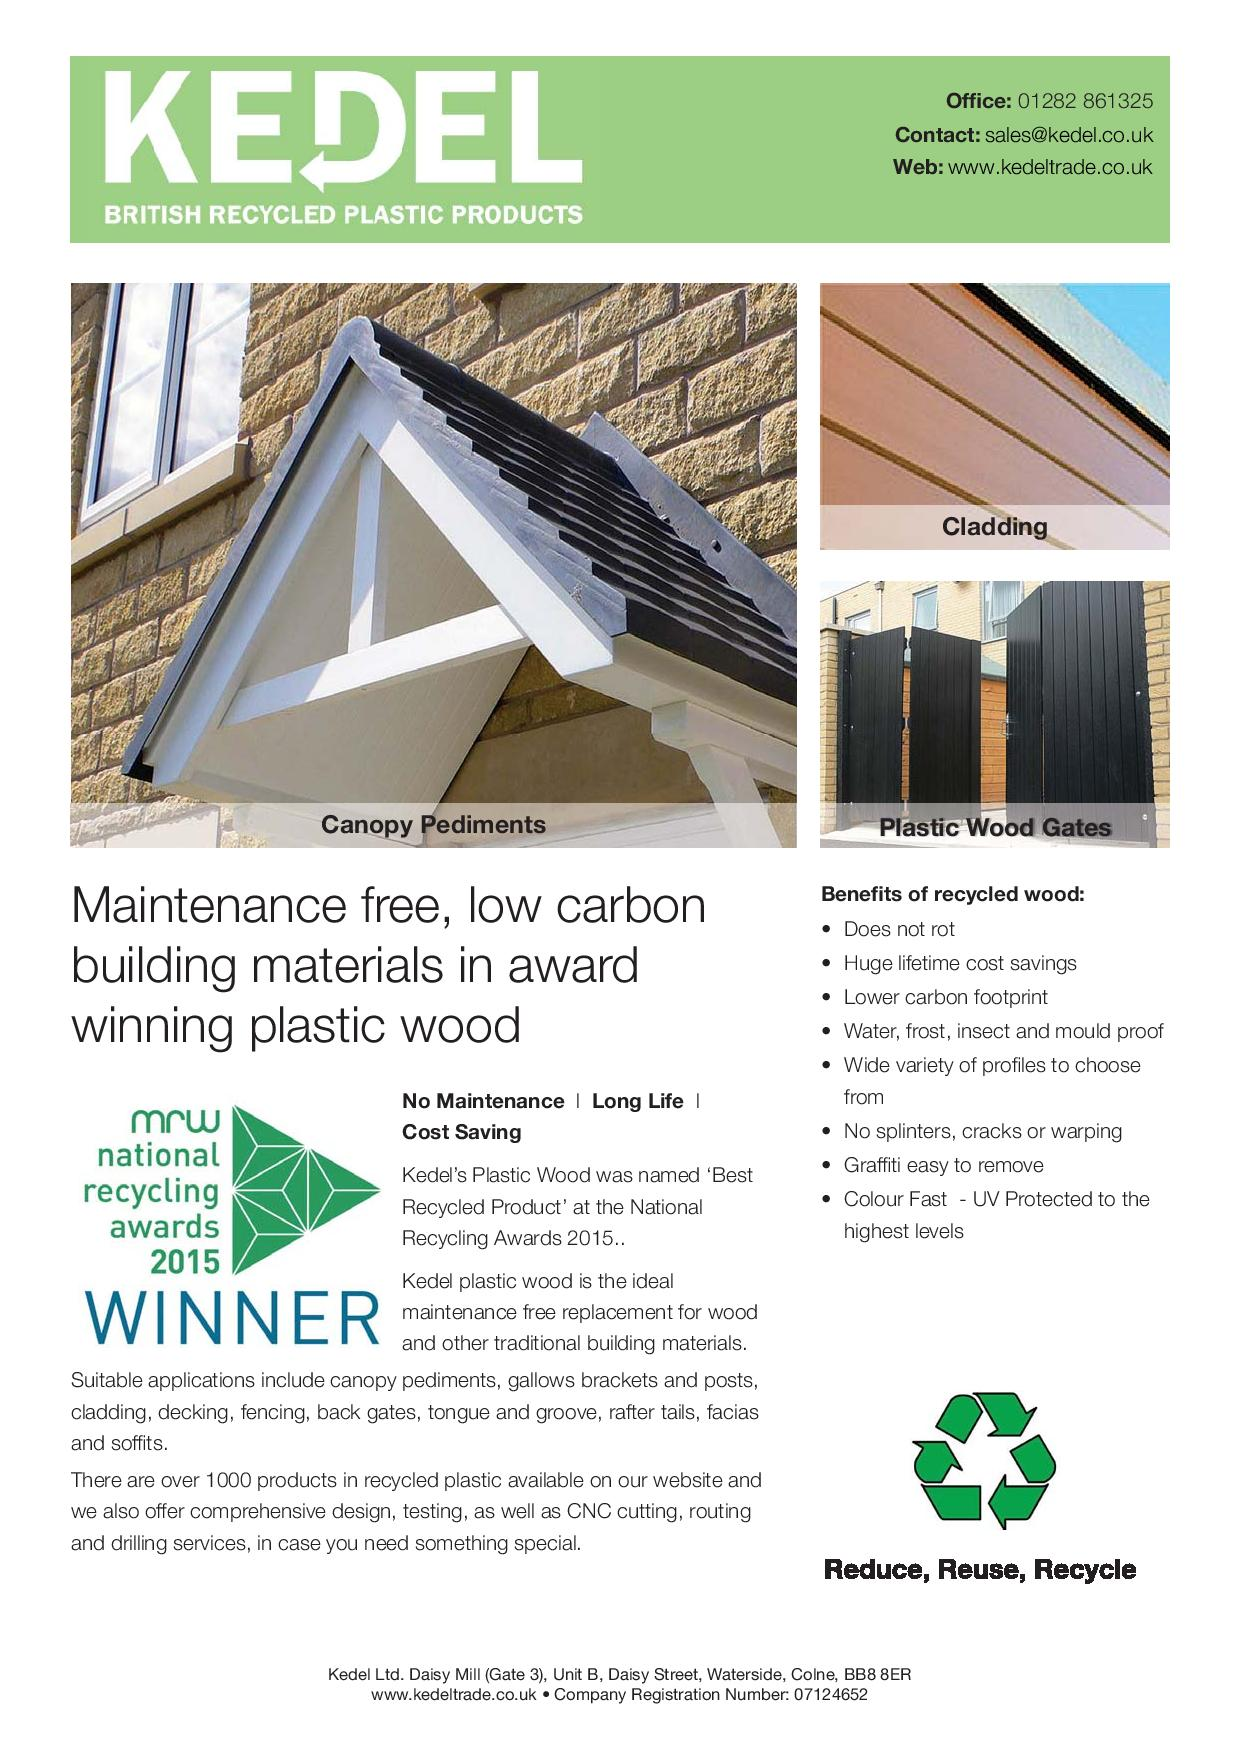 kEDEL Building Material Leaflet product range recycled plastic